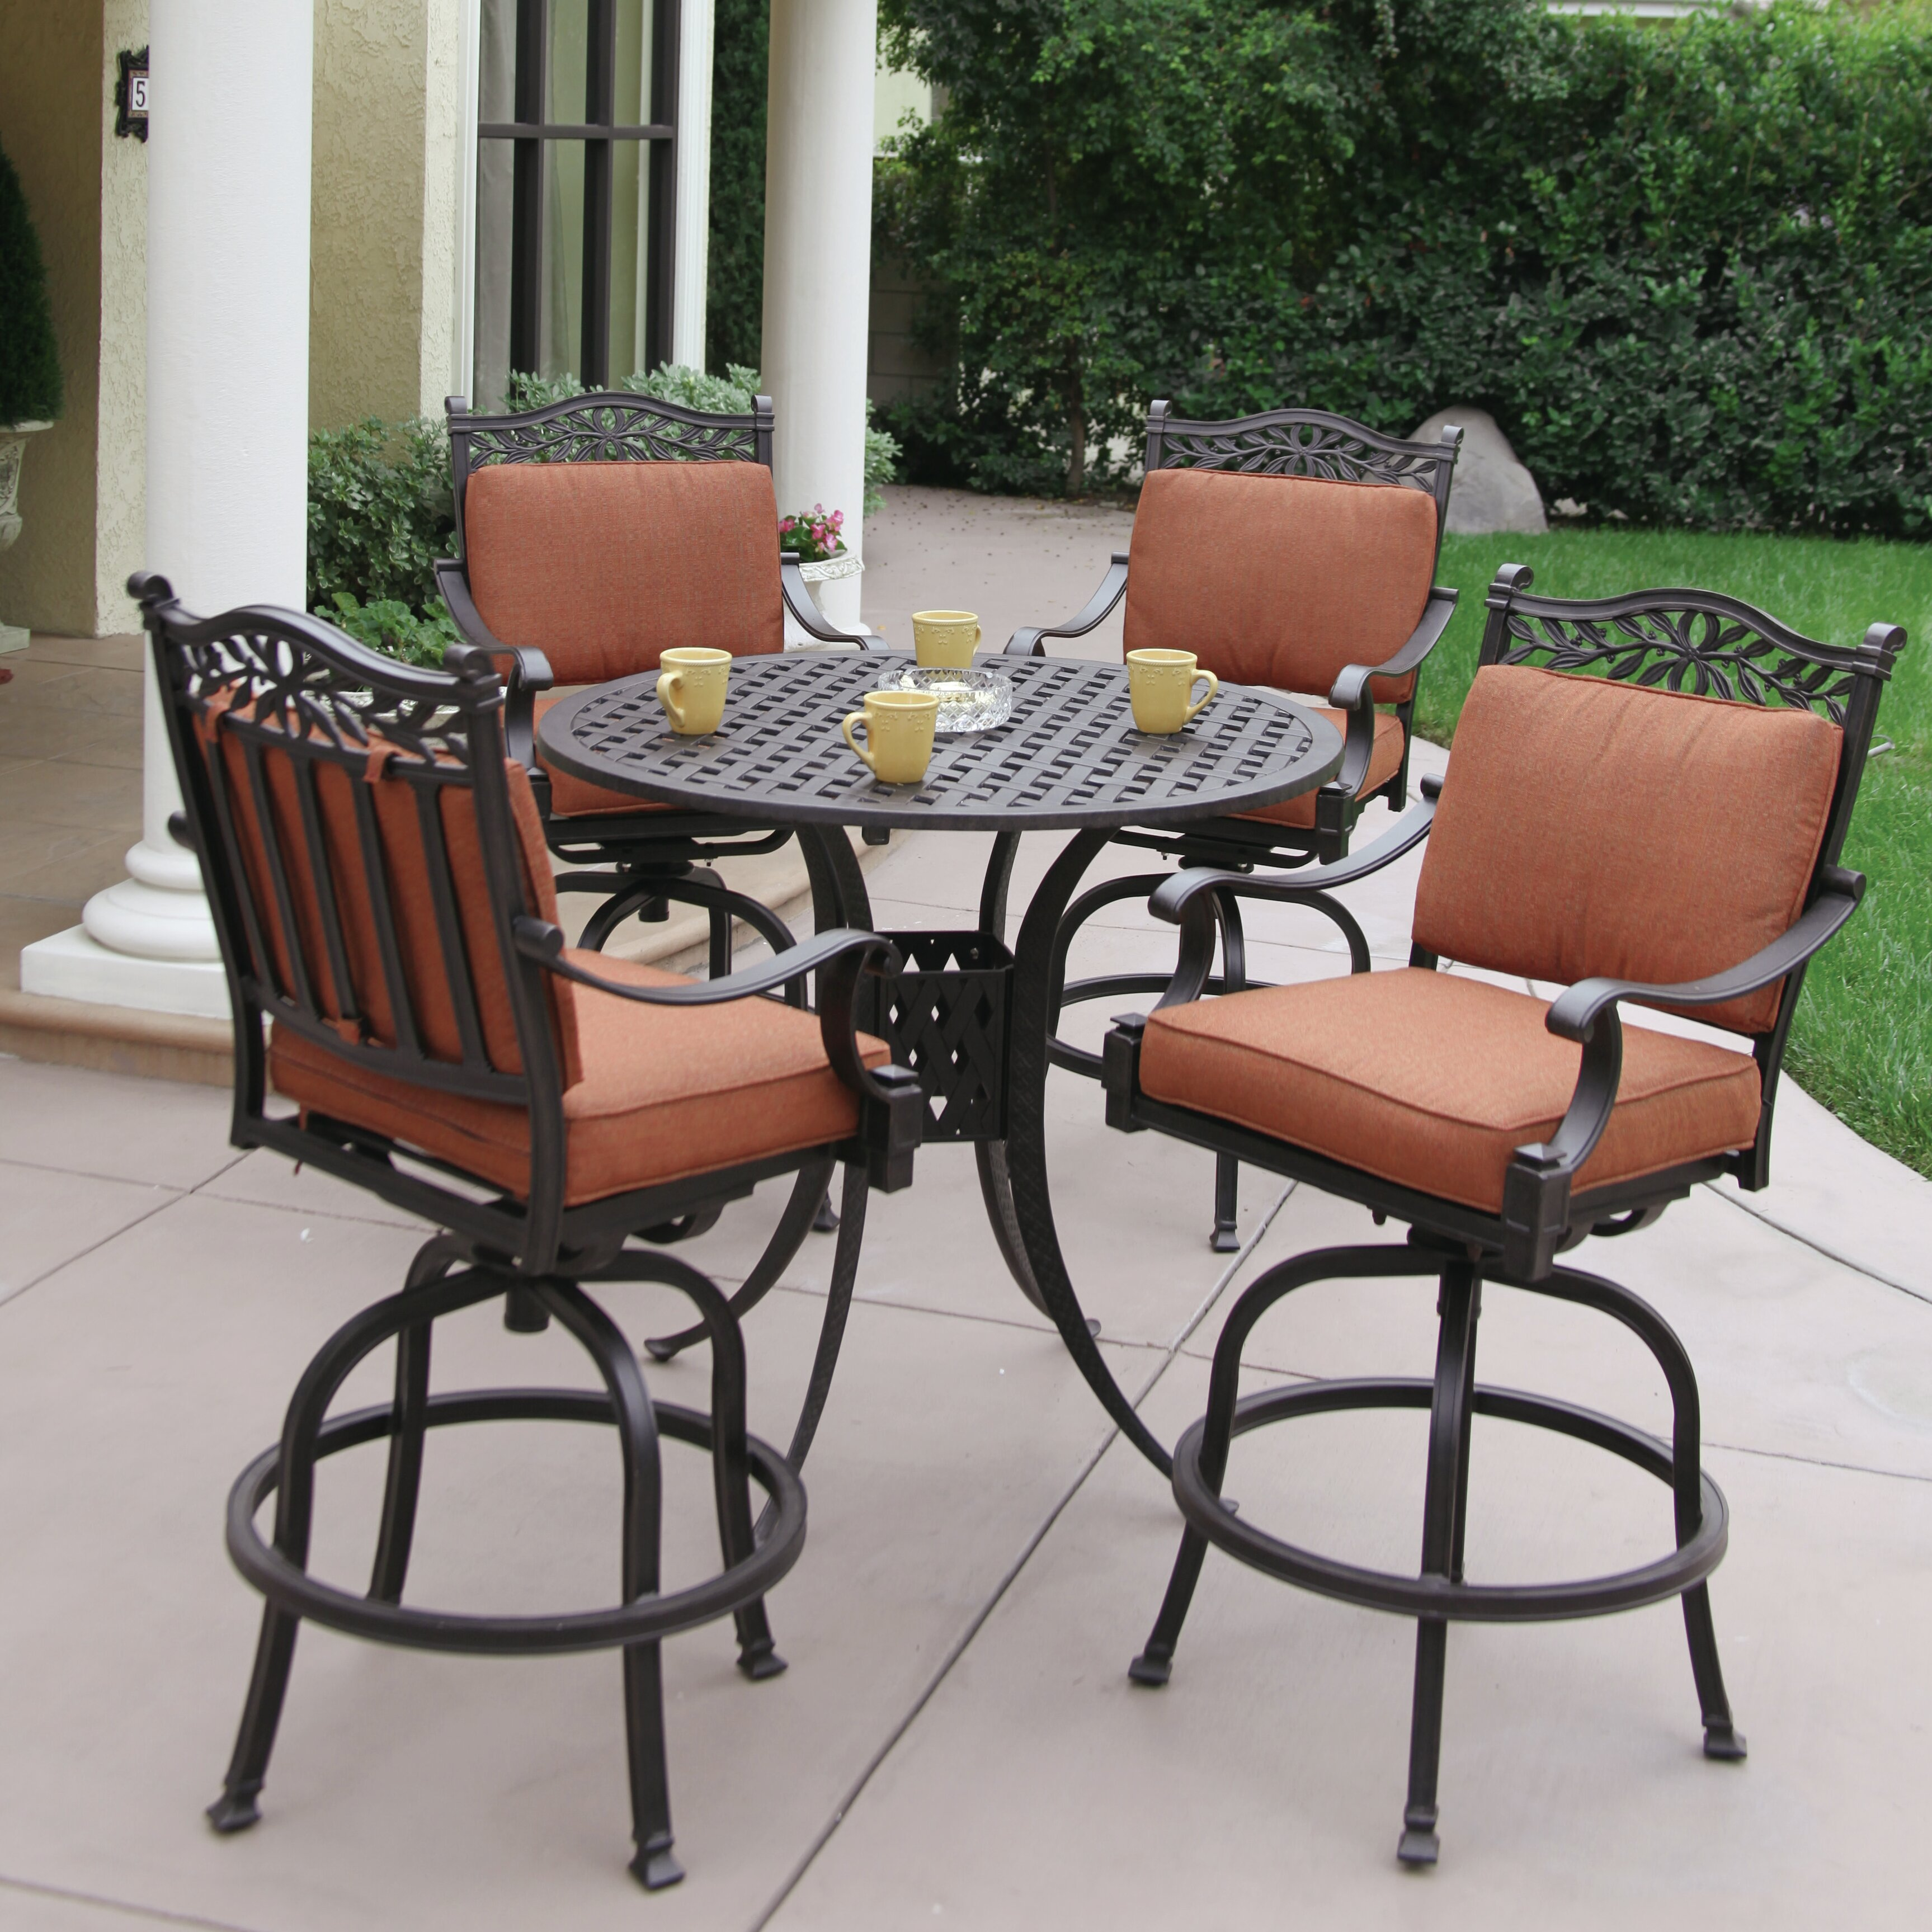 Fairmont 5 Piece Bar Height Dining Set